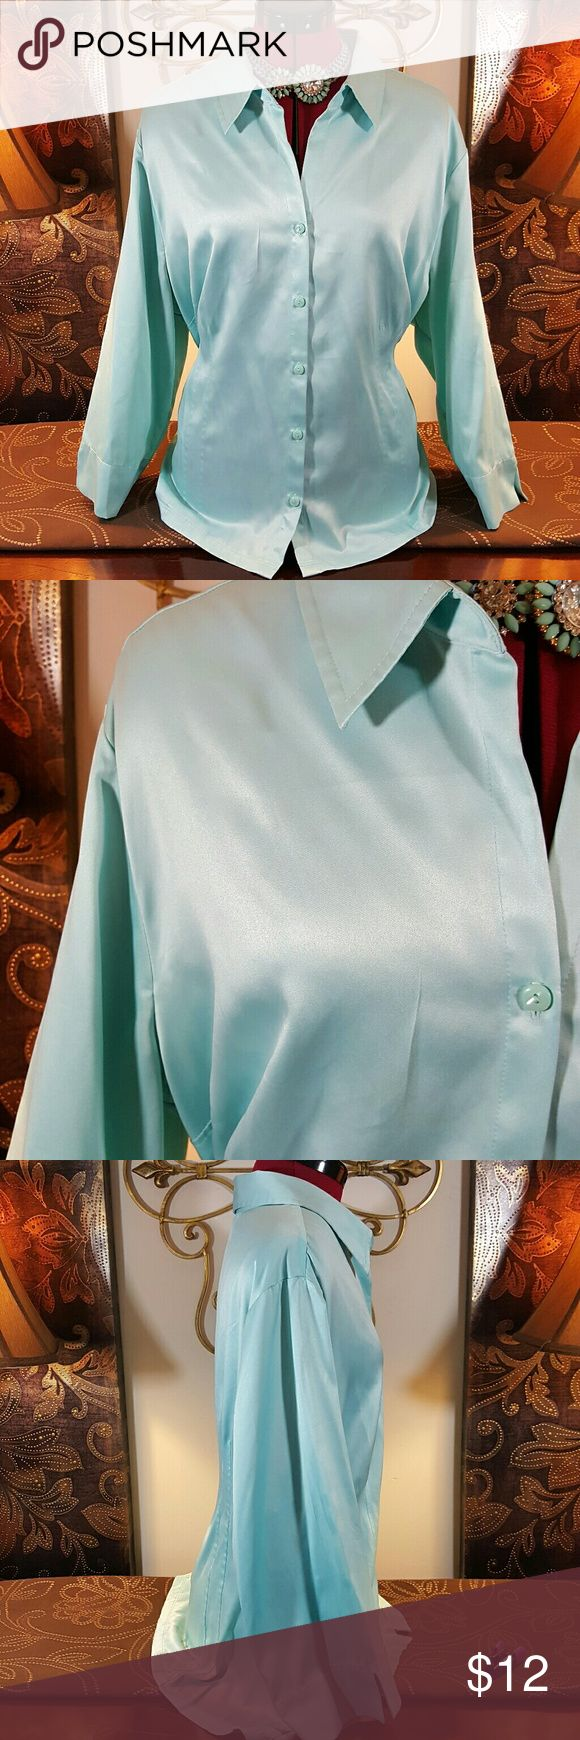 Cato Women's Plus Size Button Down Shirt 22/24W Cato Women's Plus Size Button Down Shirt 22/24W light Teal color...in great condition please see pictures for overall condition Cato Tops Button Down Shirts